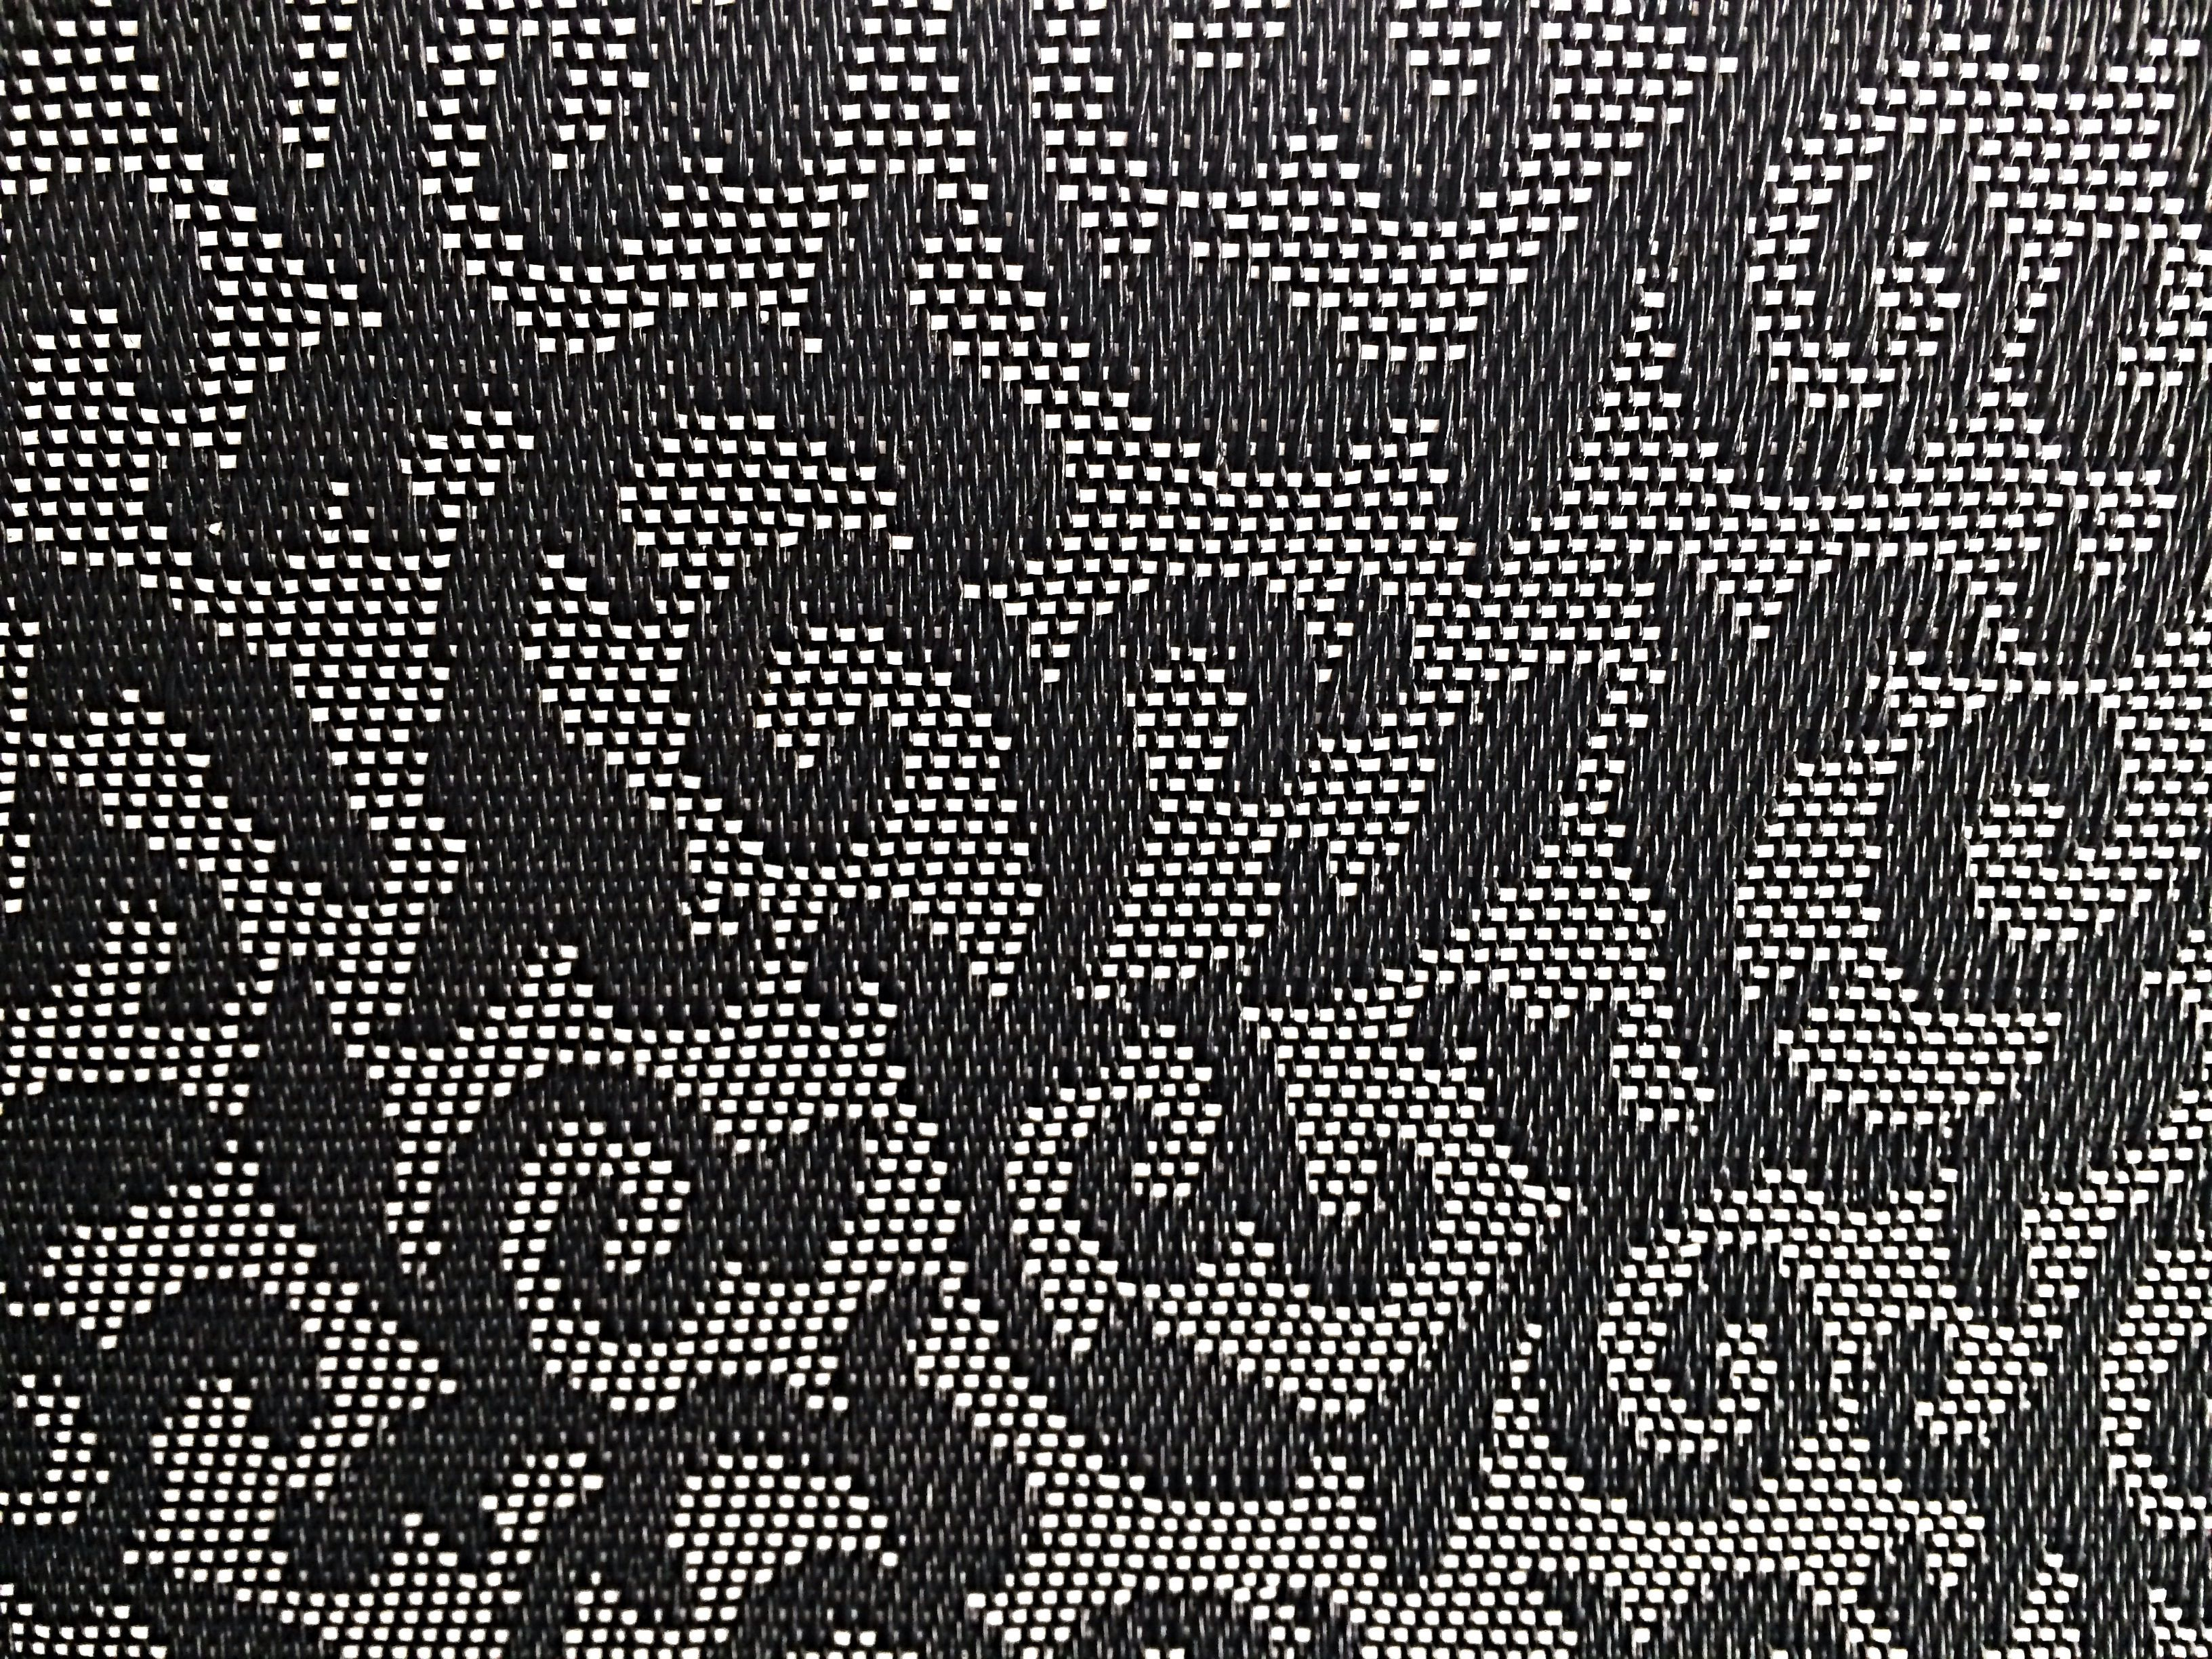 A close-up of vine-patterned upholstery